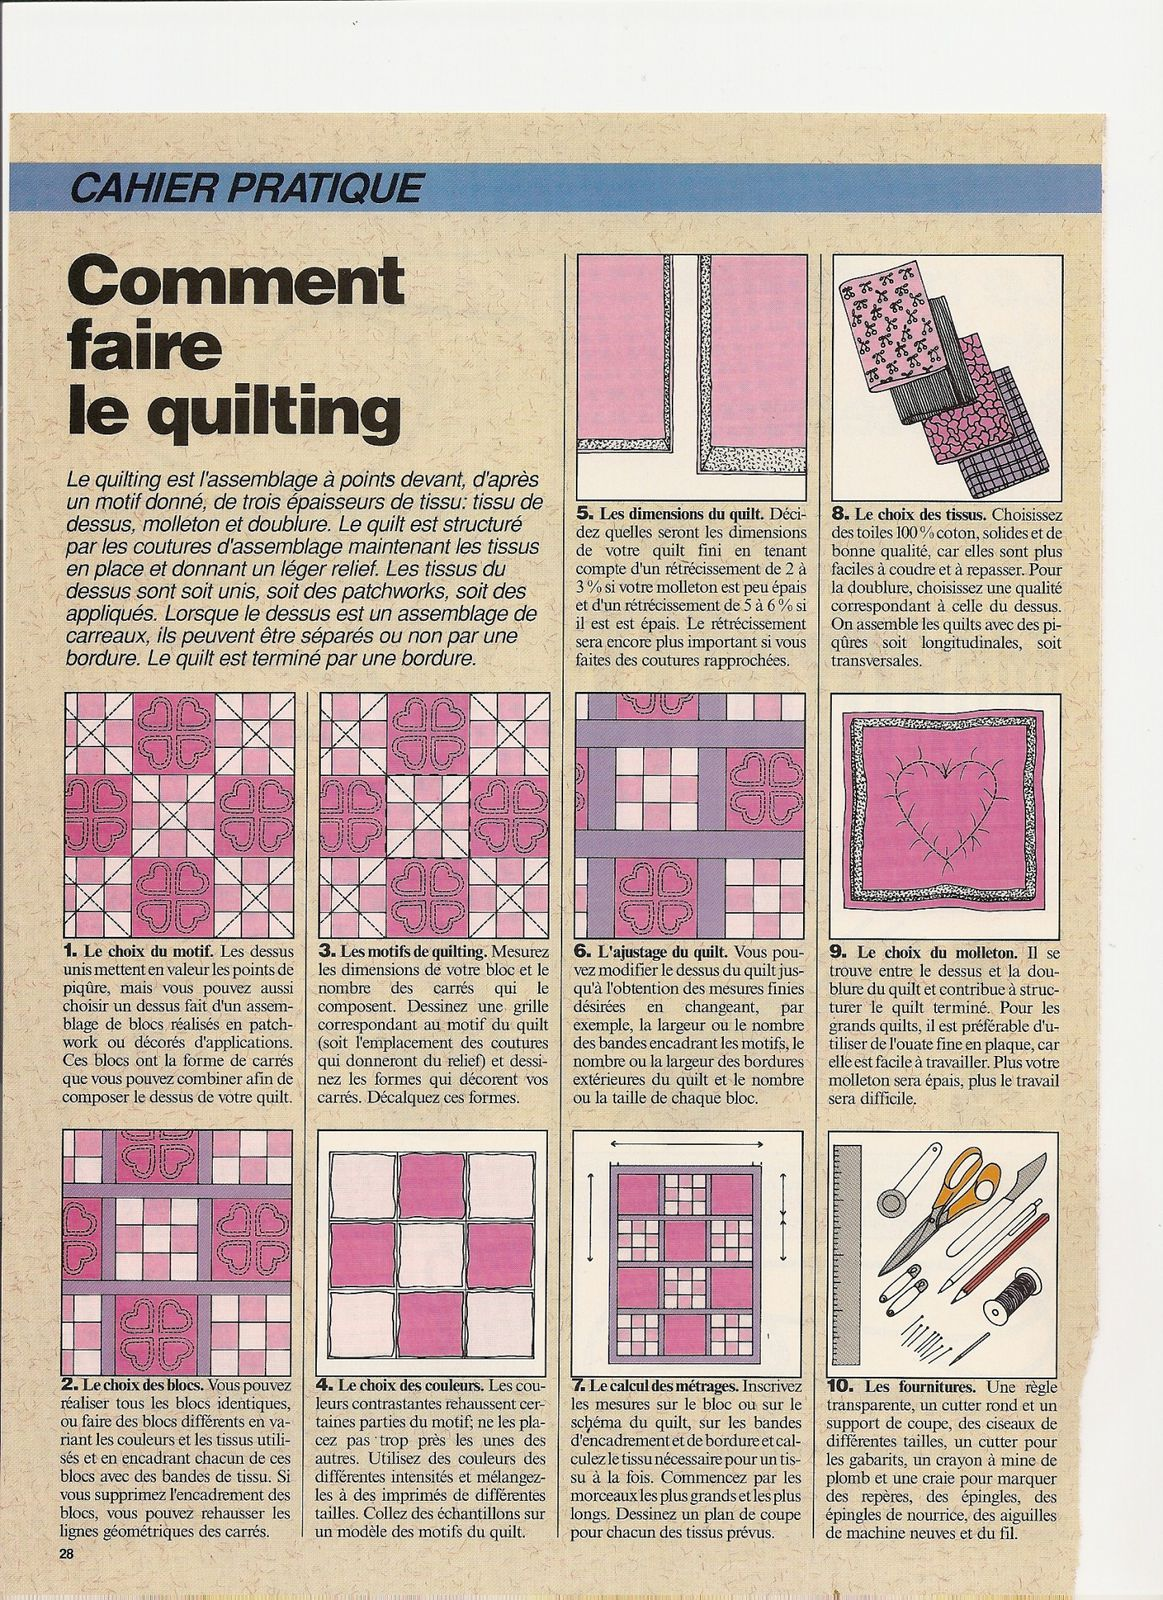 Vieux magazines comment faire le quilting myricoud - Comment faire un magazine ...